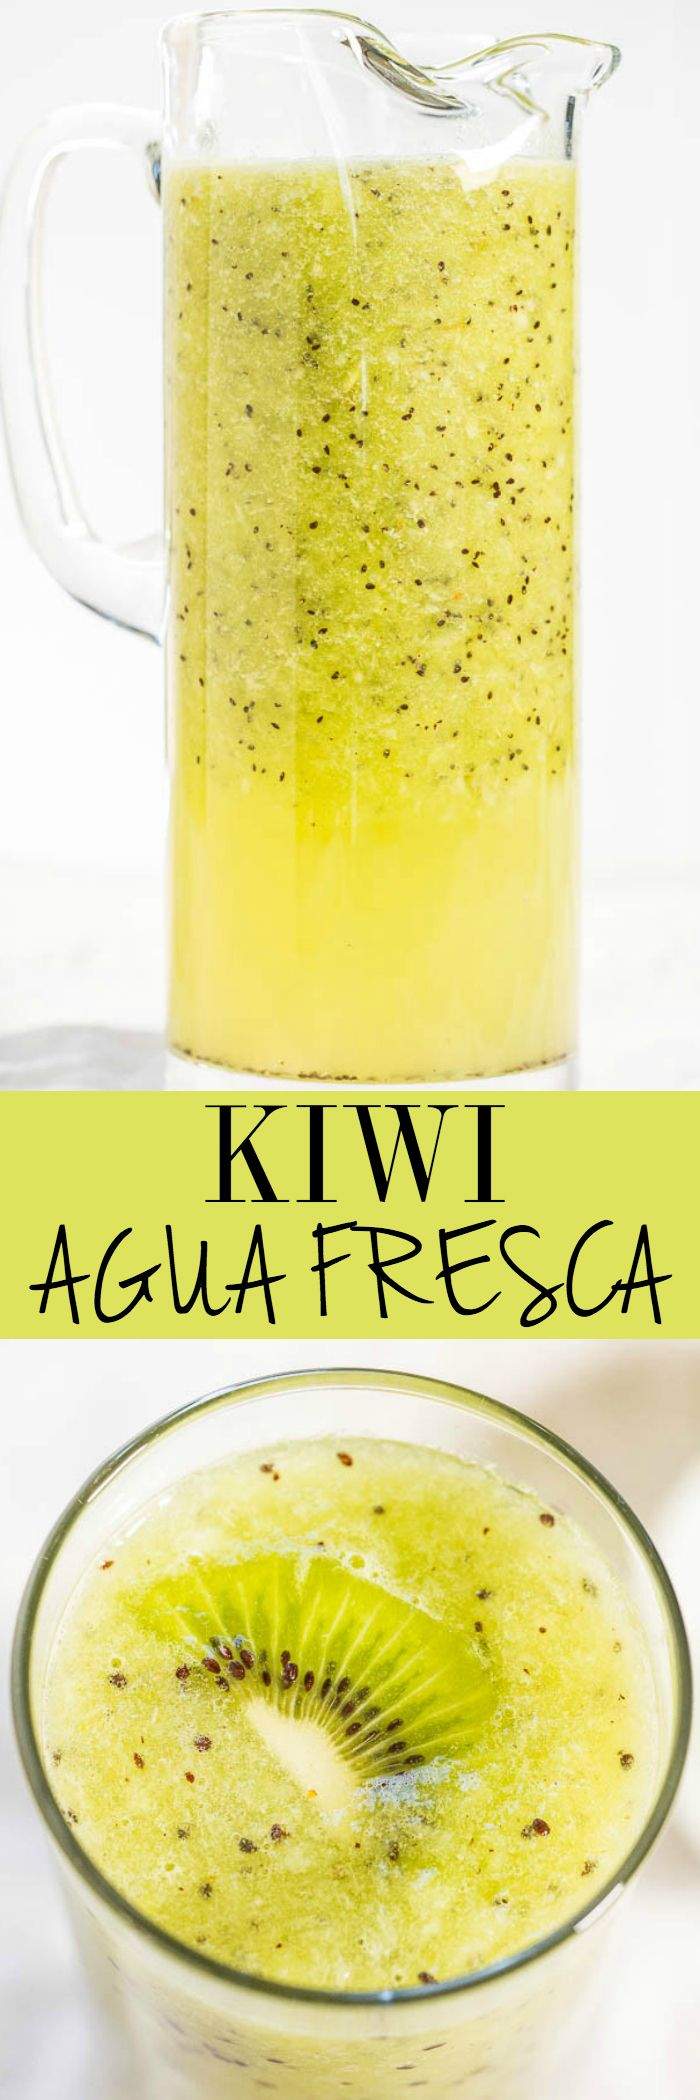 Kiwi Agua Fresca - Refreshing, healthy, naturally sweet, so easy and ready in 30 seconds!! It'll be your new favorite drink!! #FathersDay #FourthofJuly